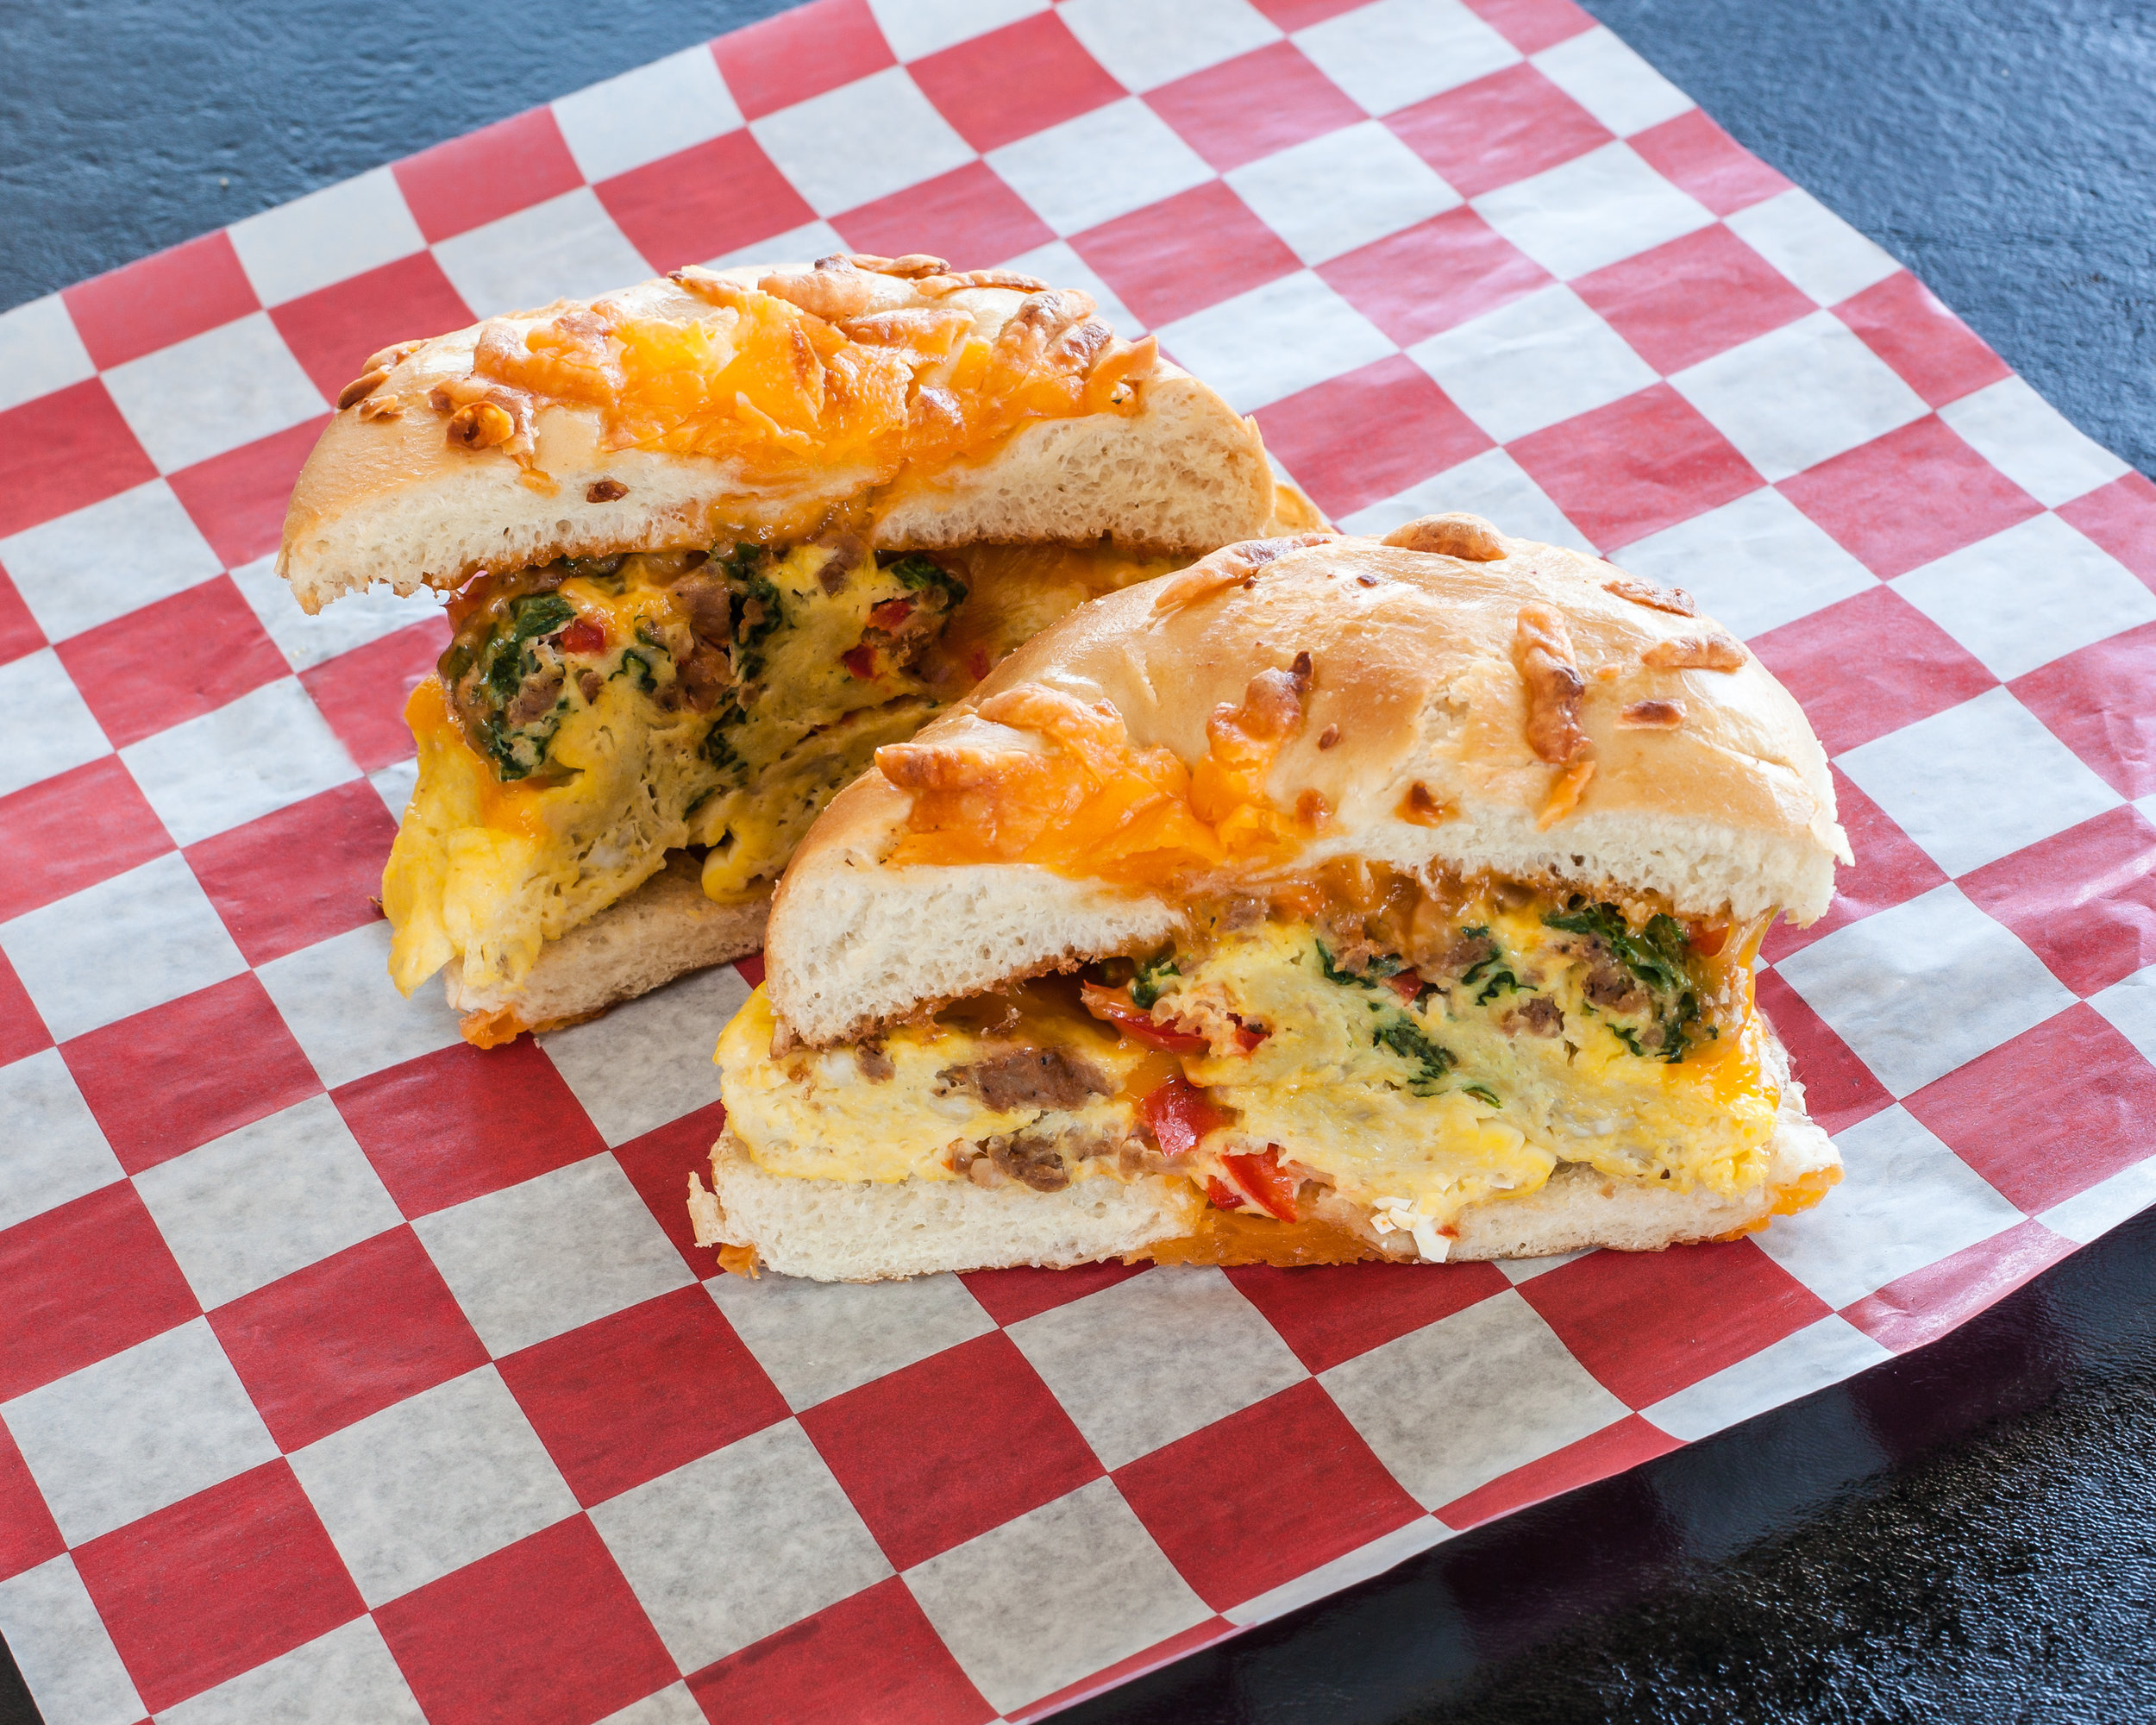 Egg Bagel Sandwich